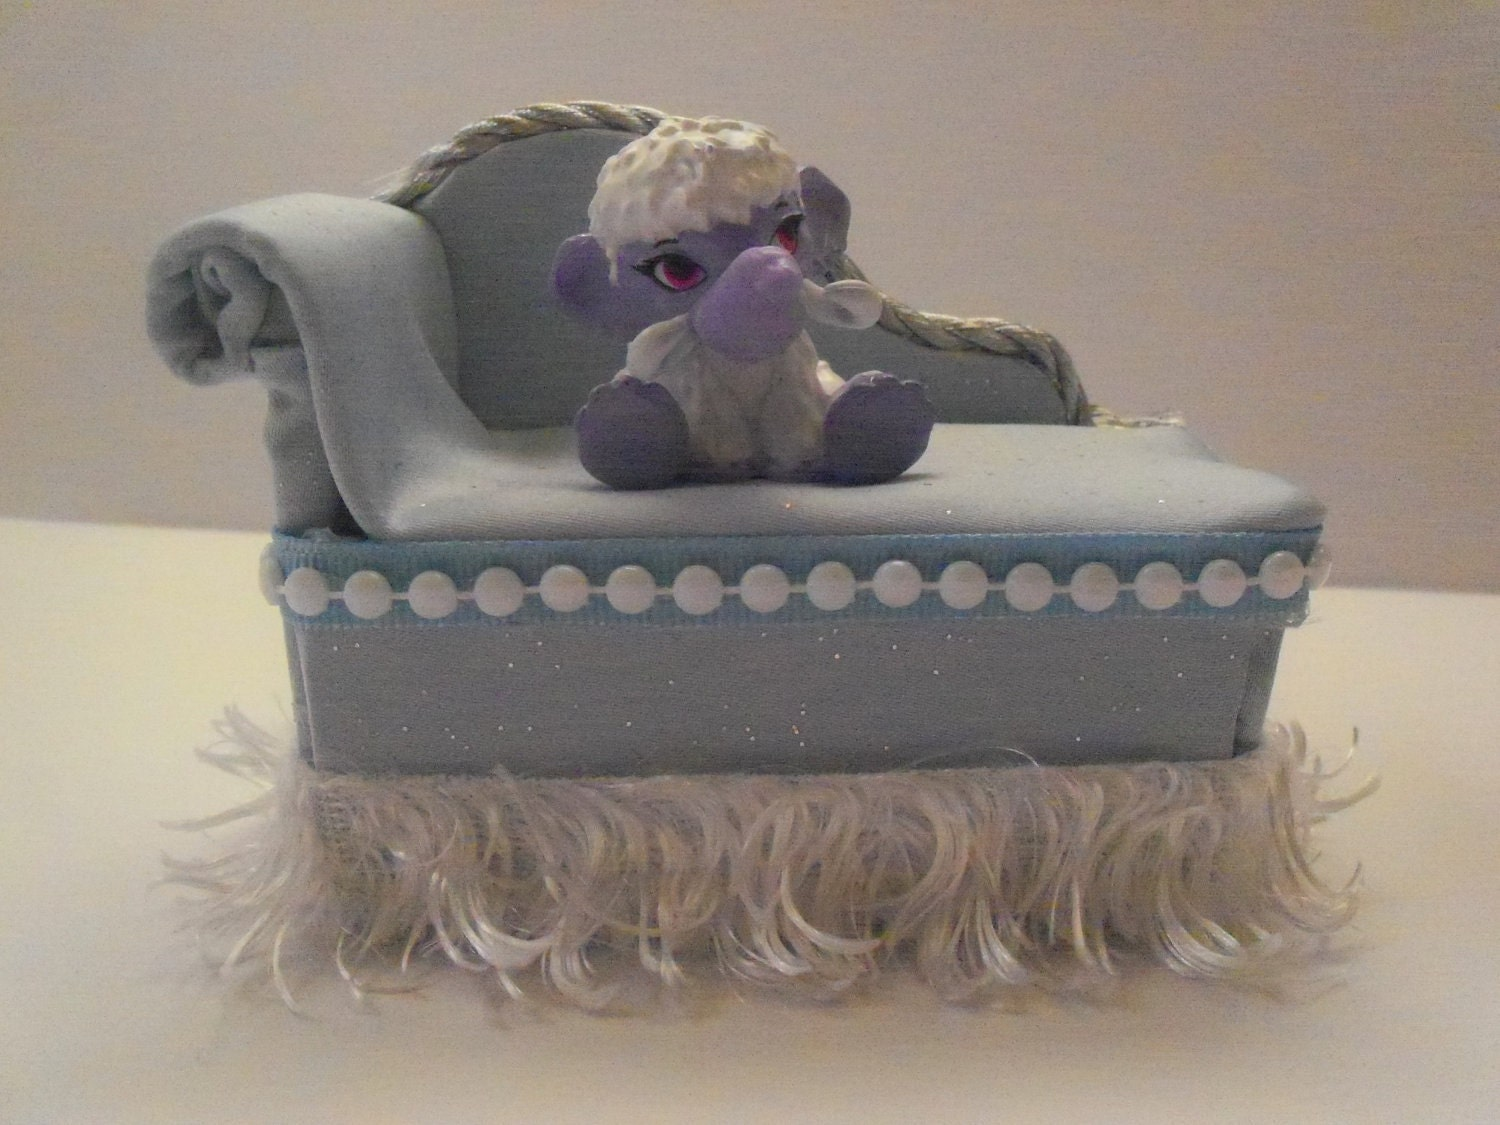 Miniature Monster High Furniture Chaise Lounge For Abbey